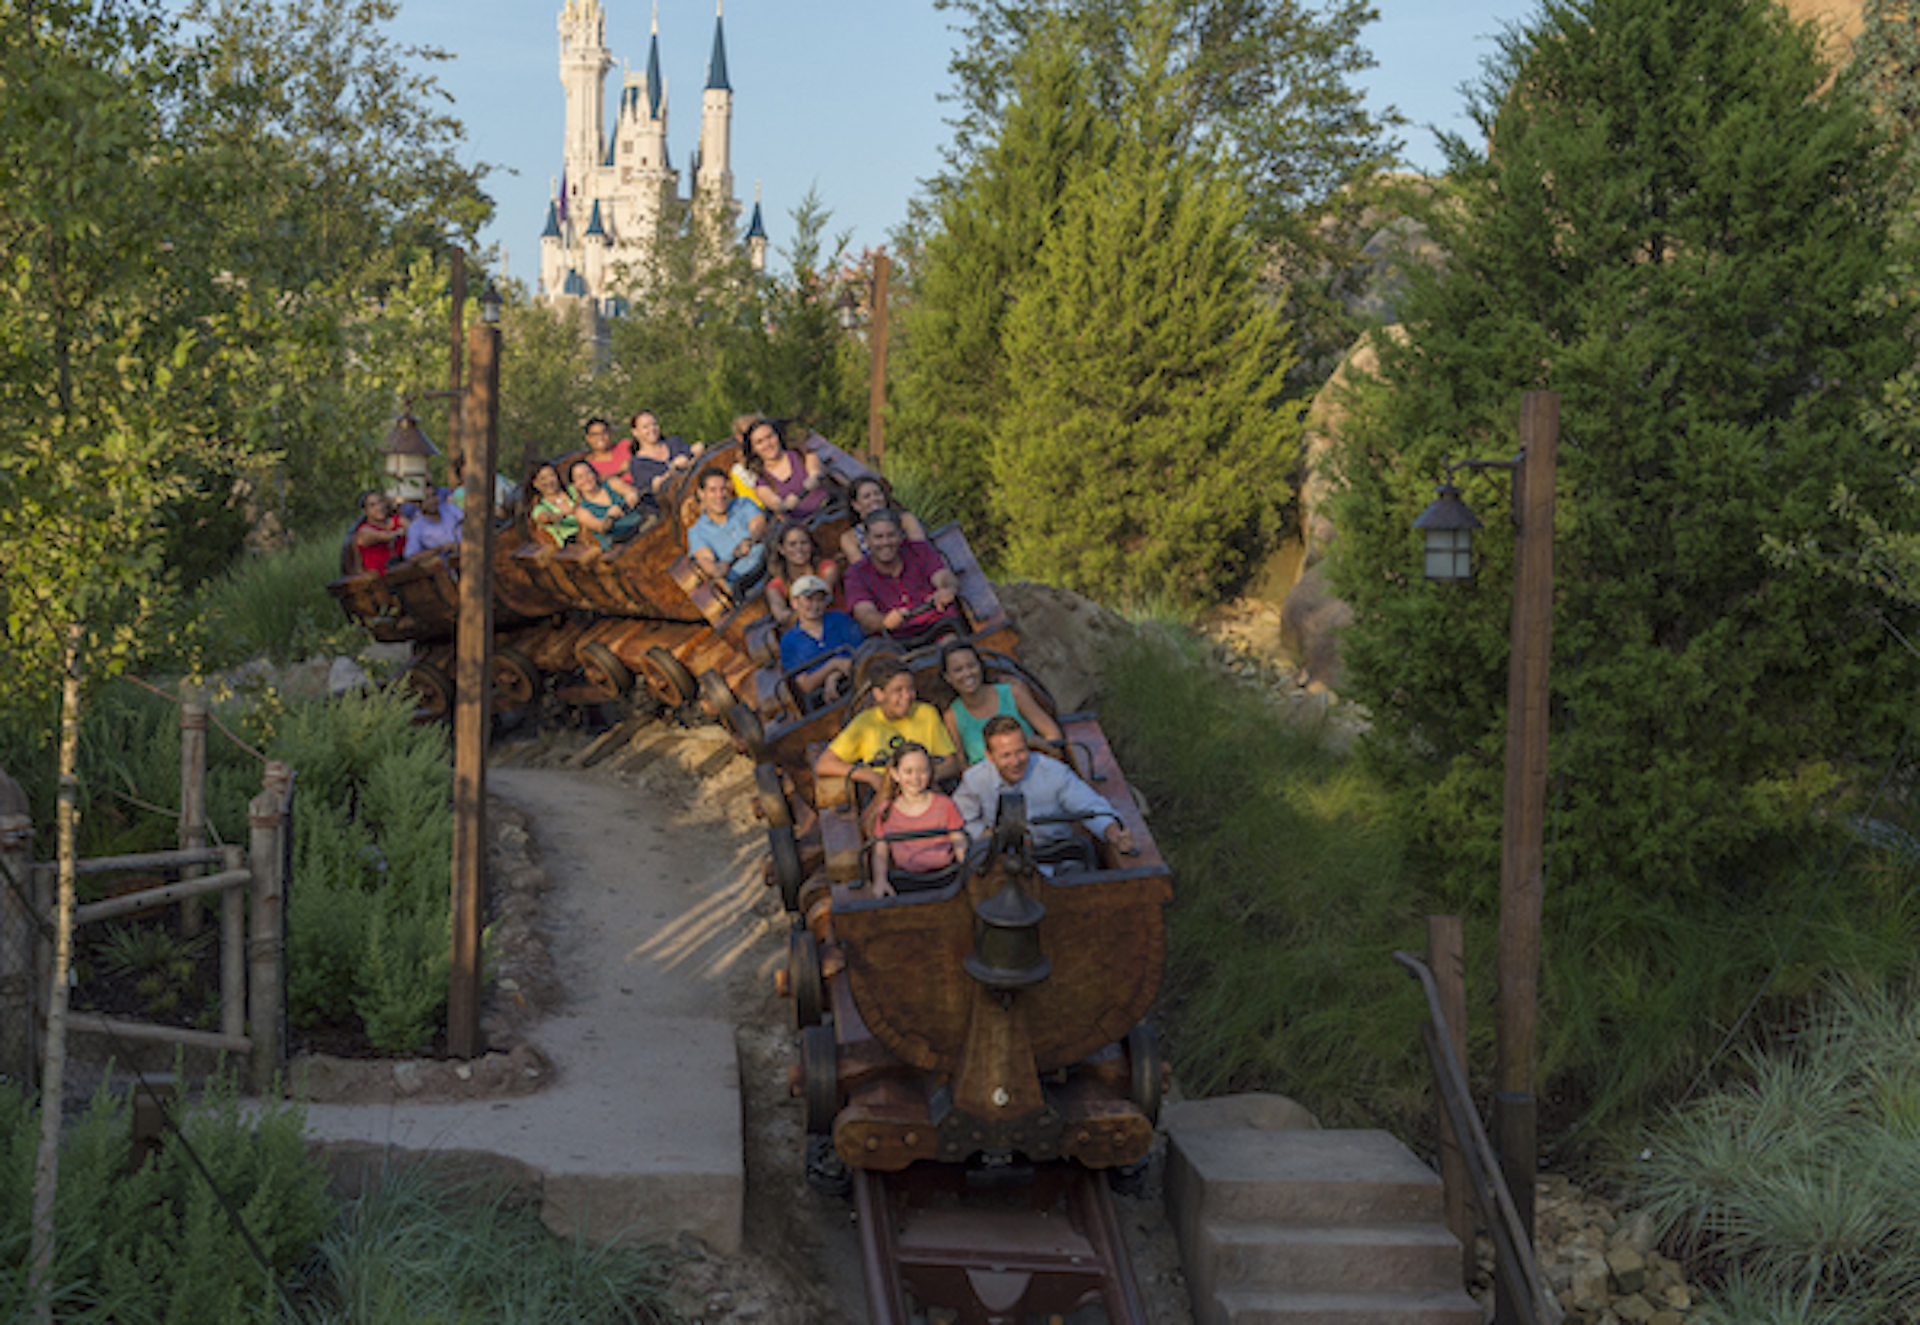 Use the Fastpass+ system to reserve a time to ride Big Thunder Mountain Railroad